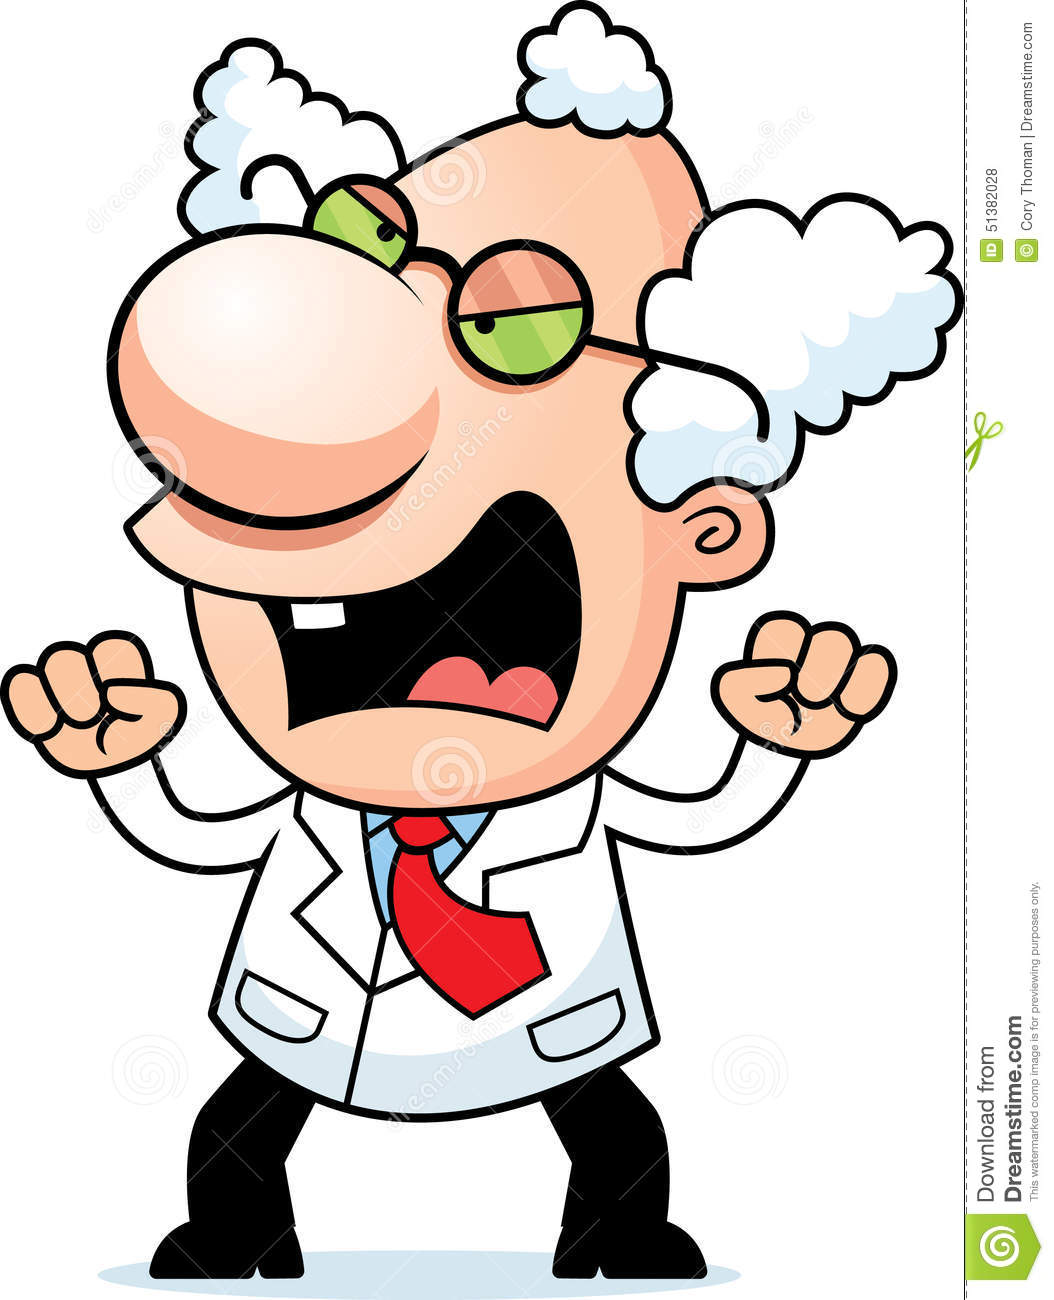 Angry Cartoon Mad Scientist Stock Vector - Image: 51382028